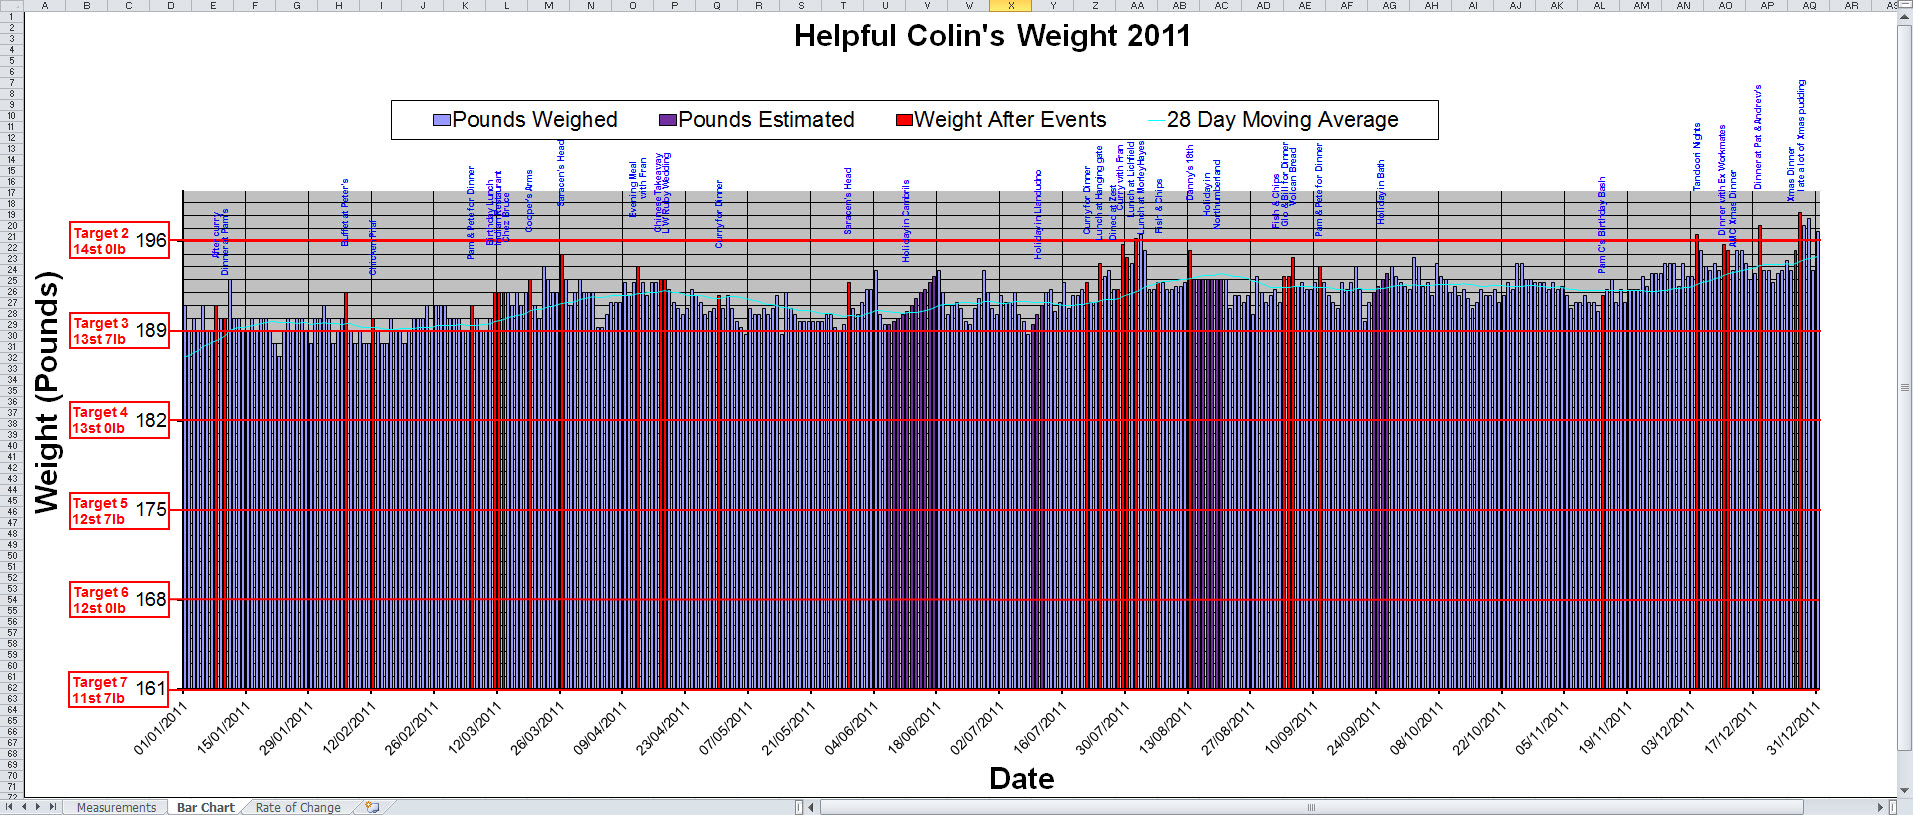 Excel templates for body weight records helpful colin excel graph of helpful colins weight 2011 select it to enlarge it geenschuldenfo Image collections